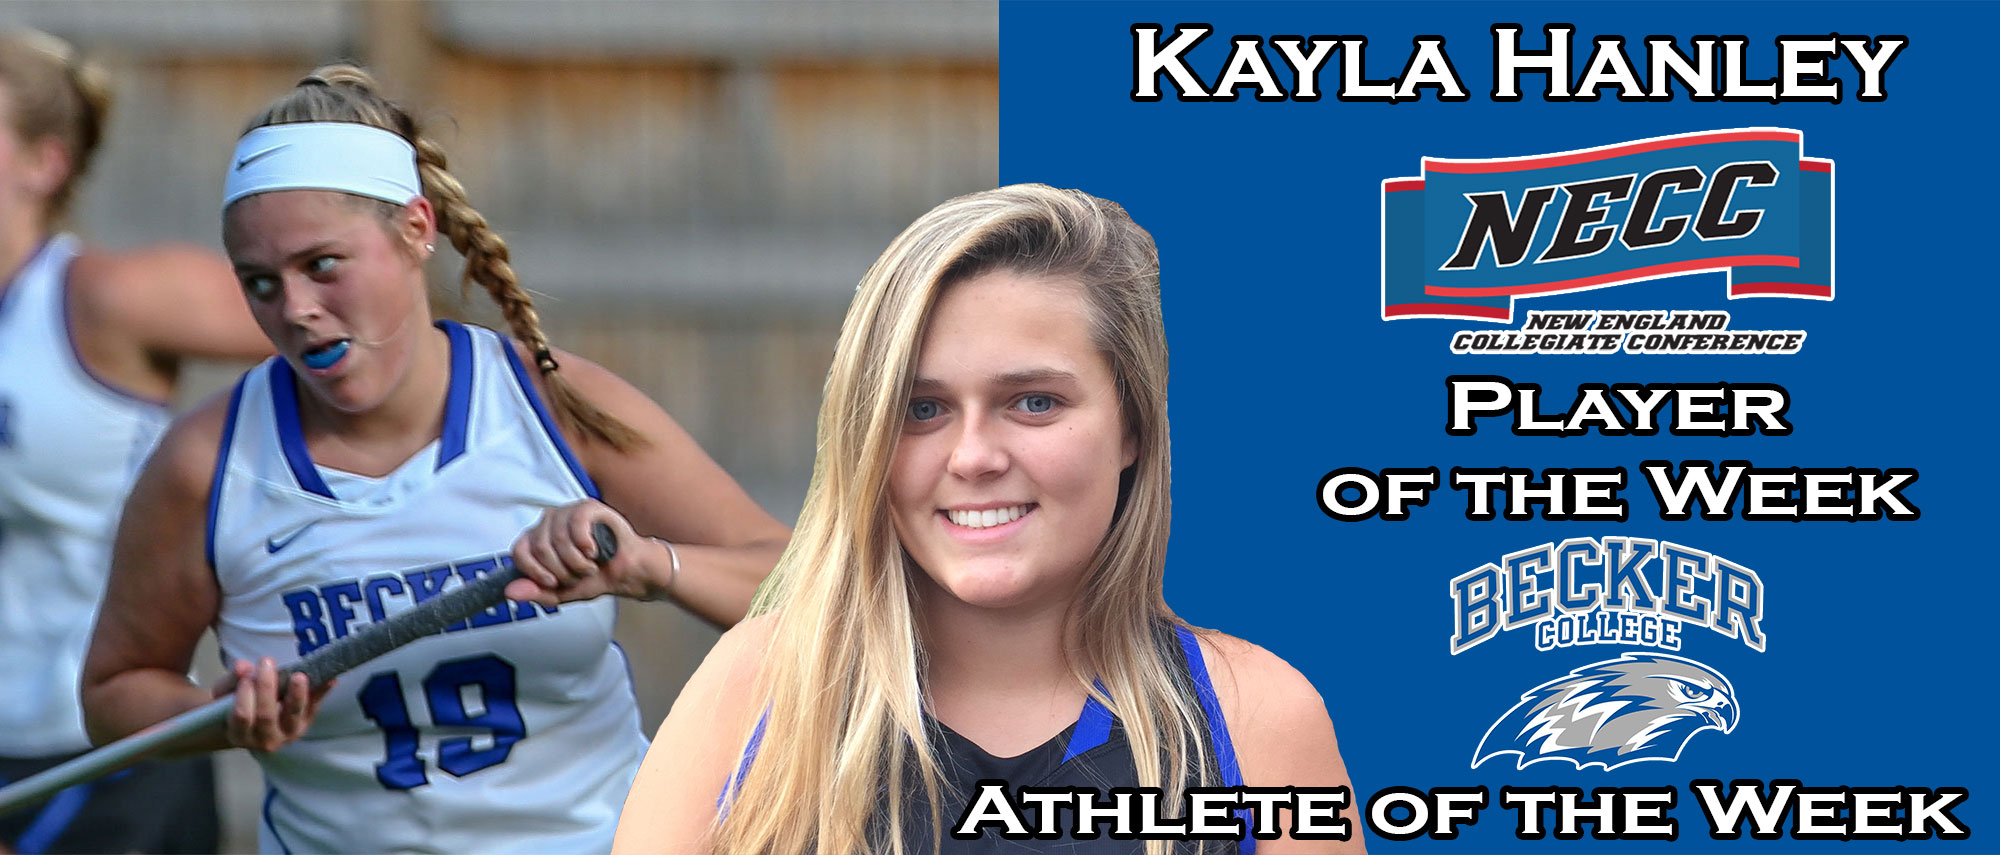 Kayla Hanley - NECC Player of the Week / Athlete of the Week